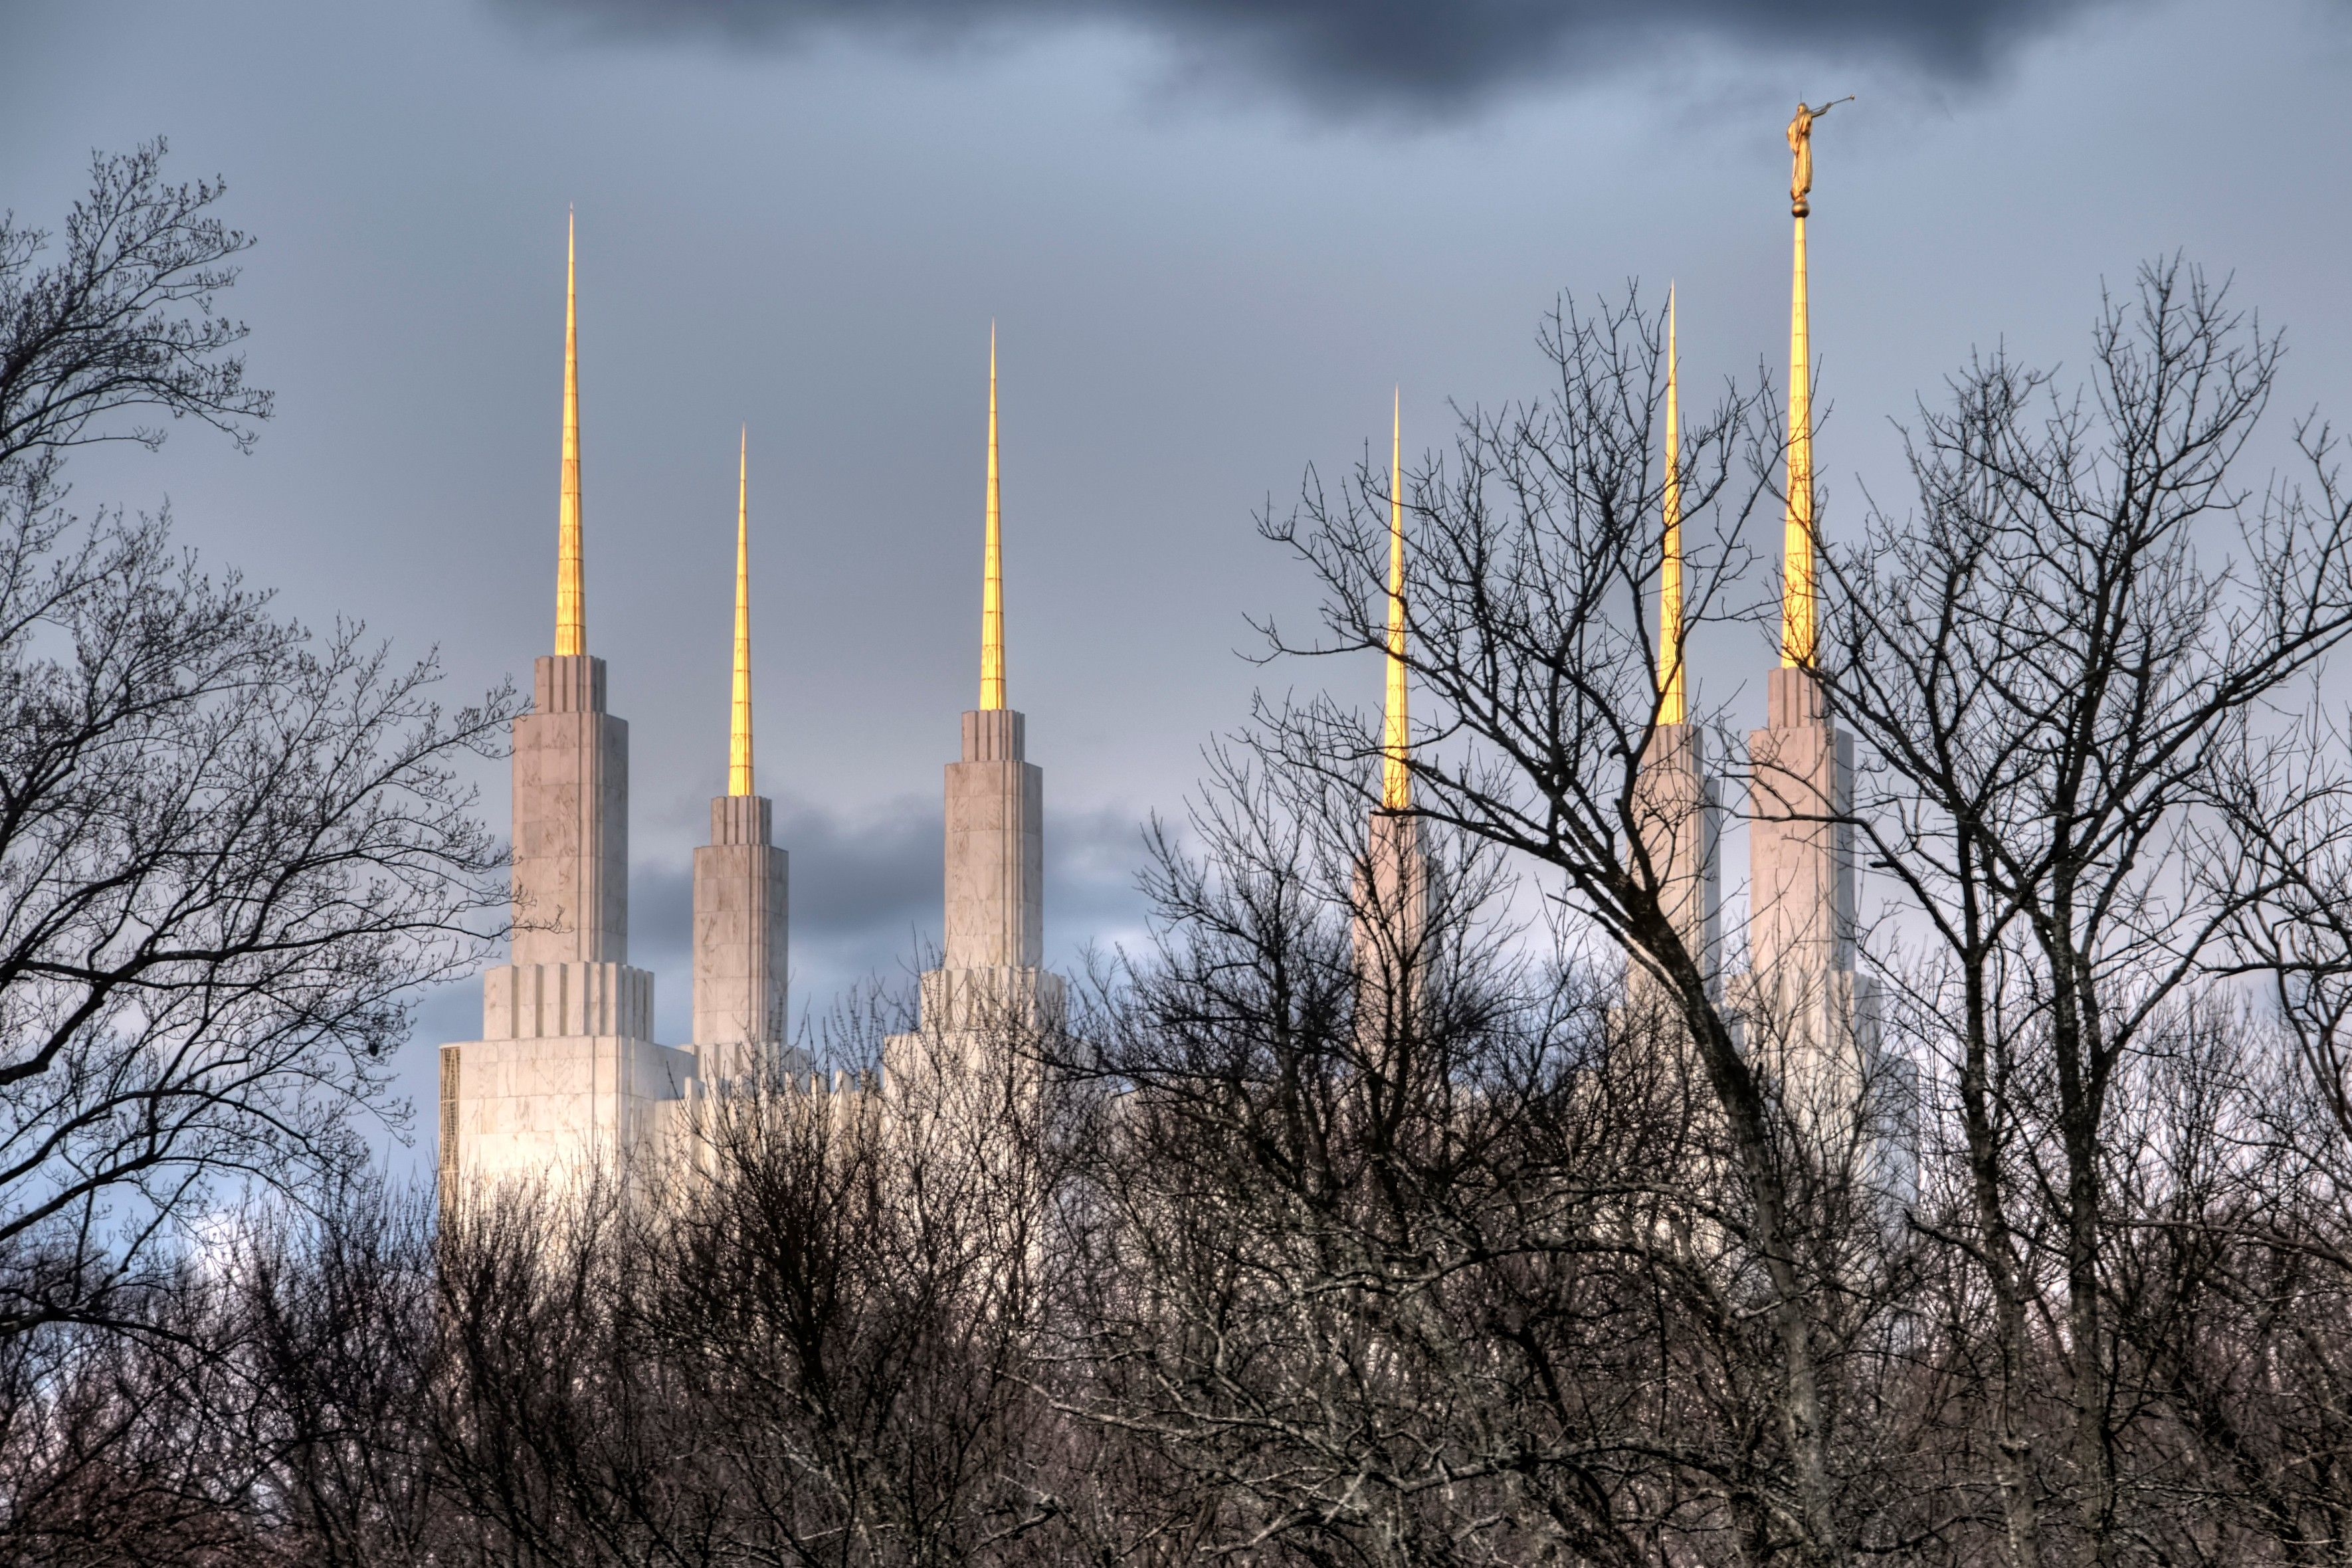 The Washington D.C. Temple spires, with trees.